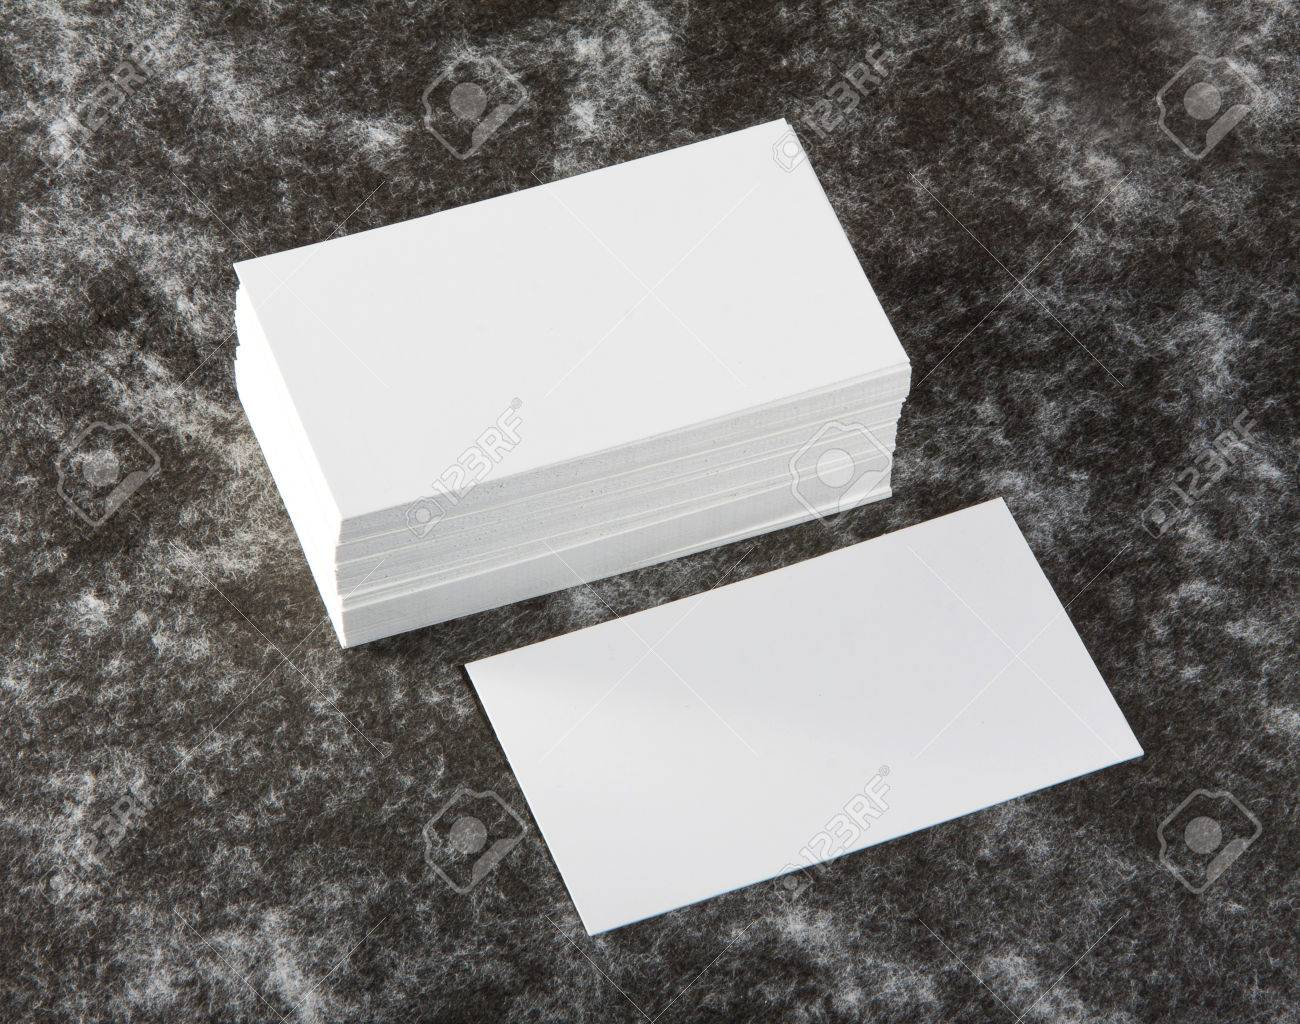 Blank Business Cards On A Fabric Texture Background Stock Photo ...